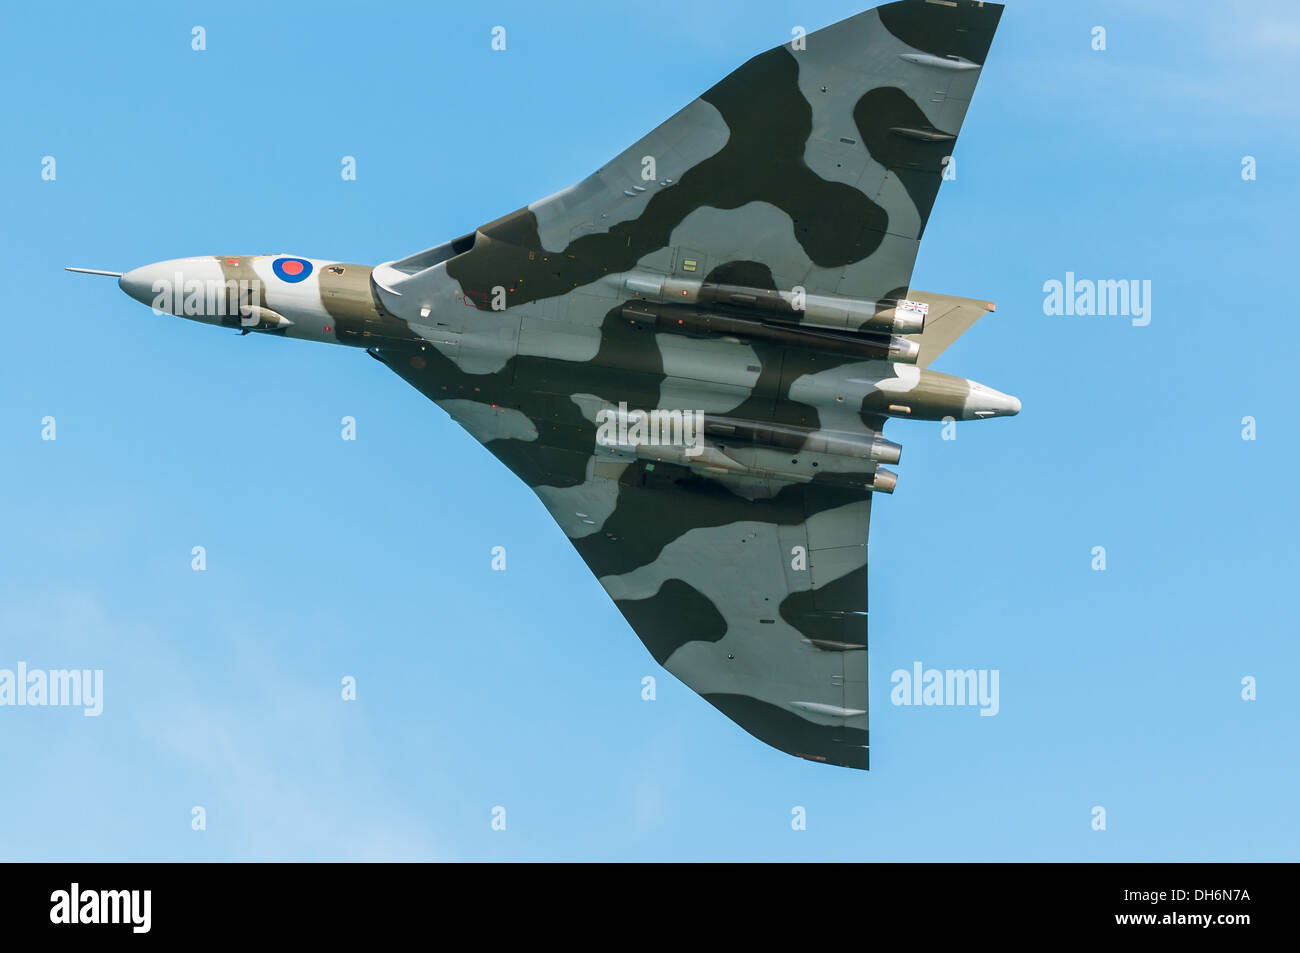 Dawlish, Devon, England. A Vulcan bomber with its bomb bay doors closed in flight over Dawlish during the towns summer air show. - Stock Image